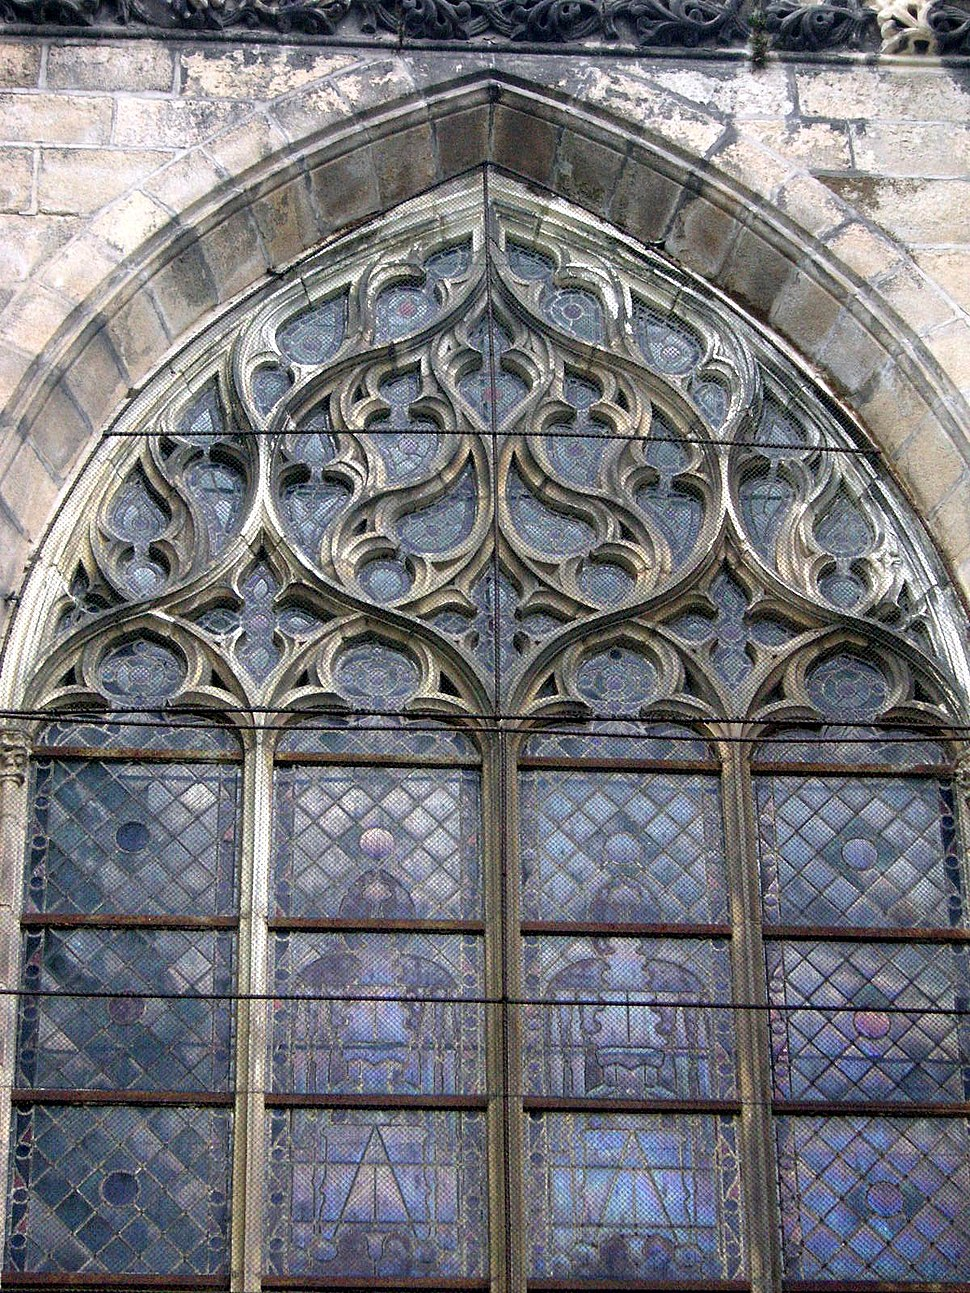 Limoges curvilinear tracery